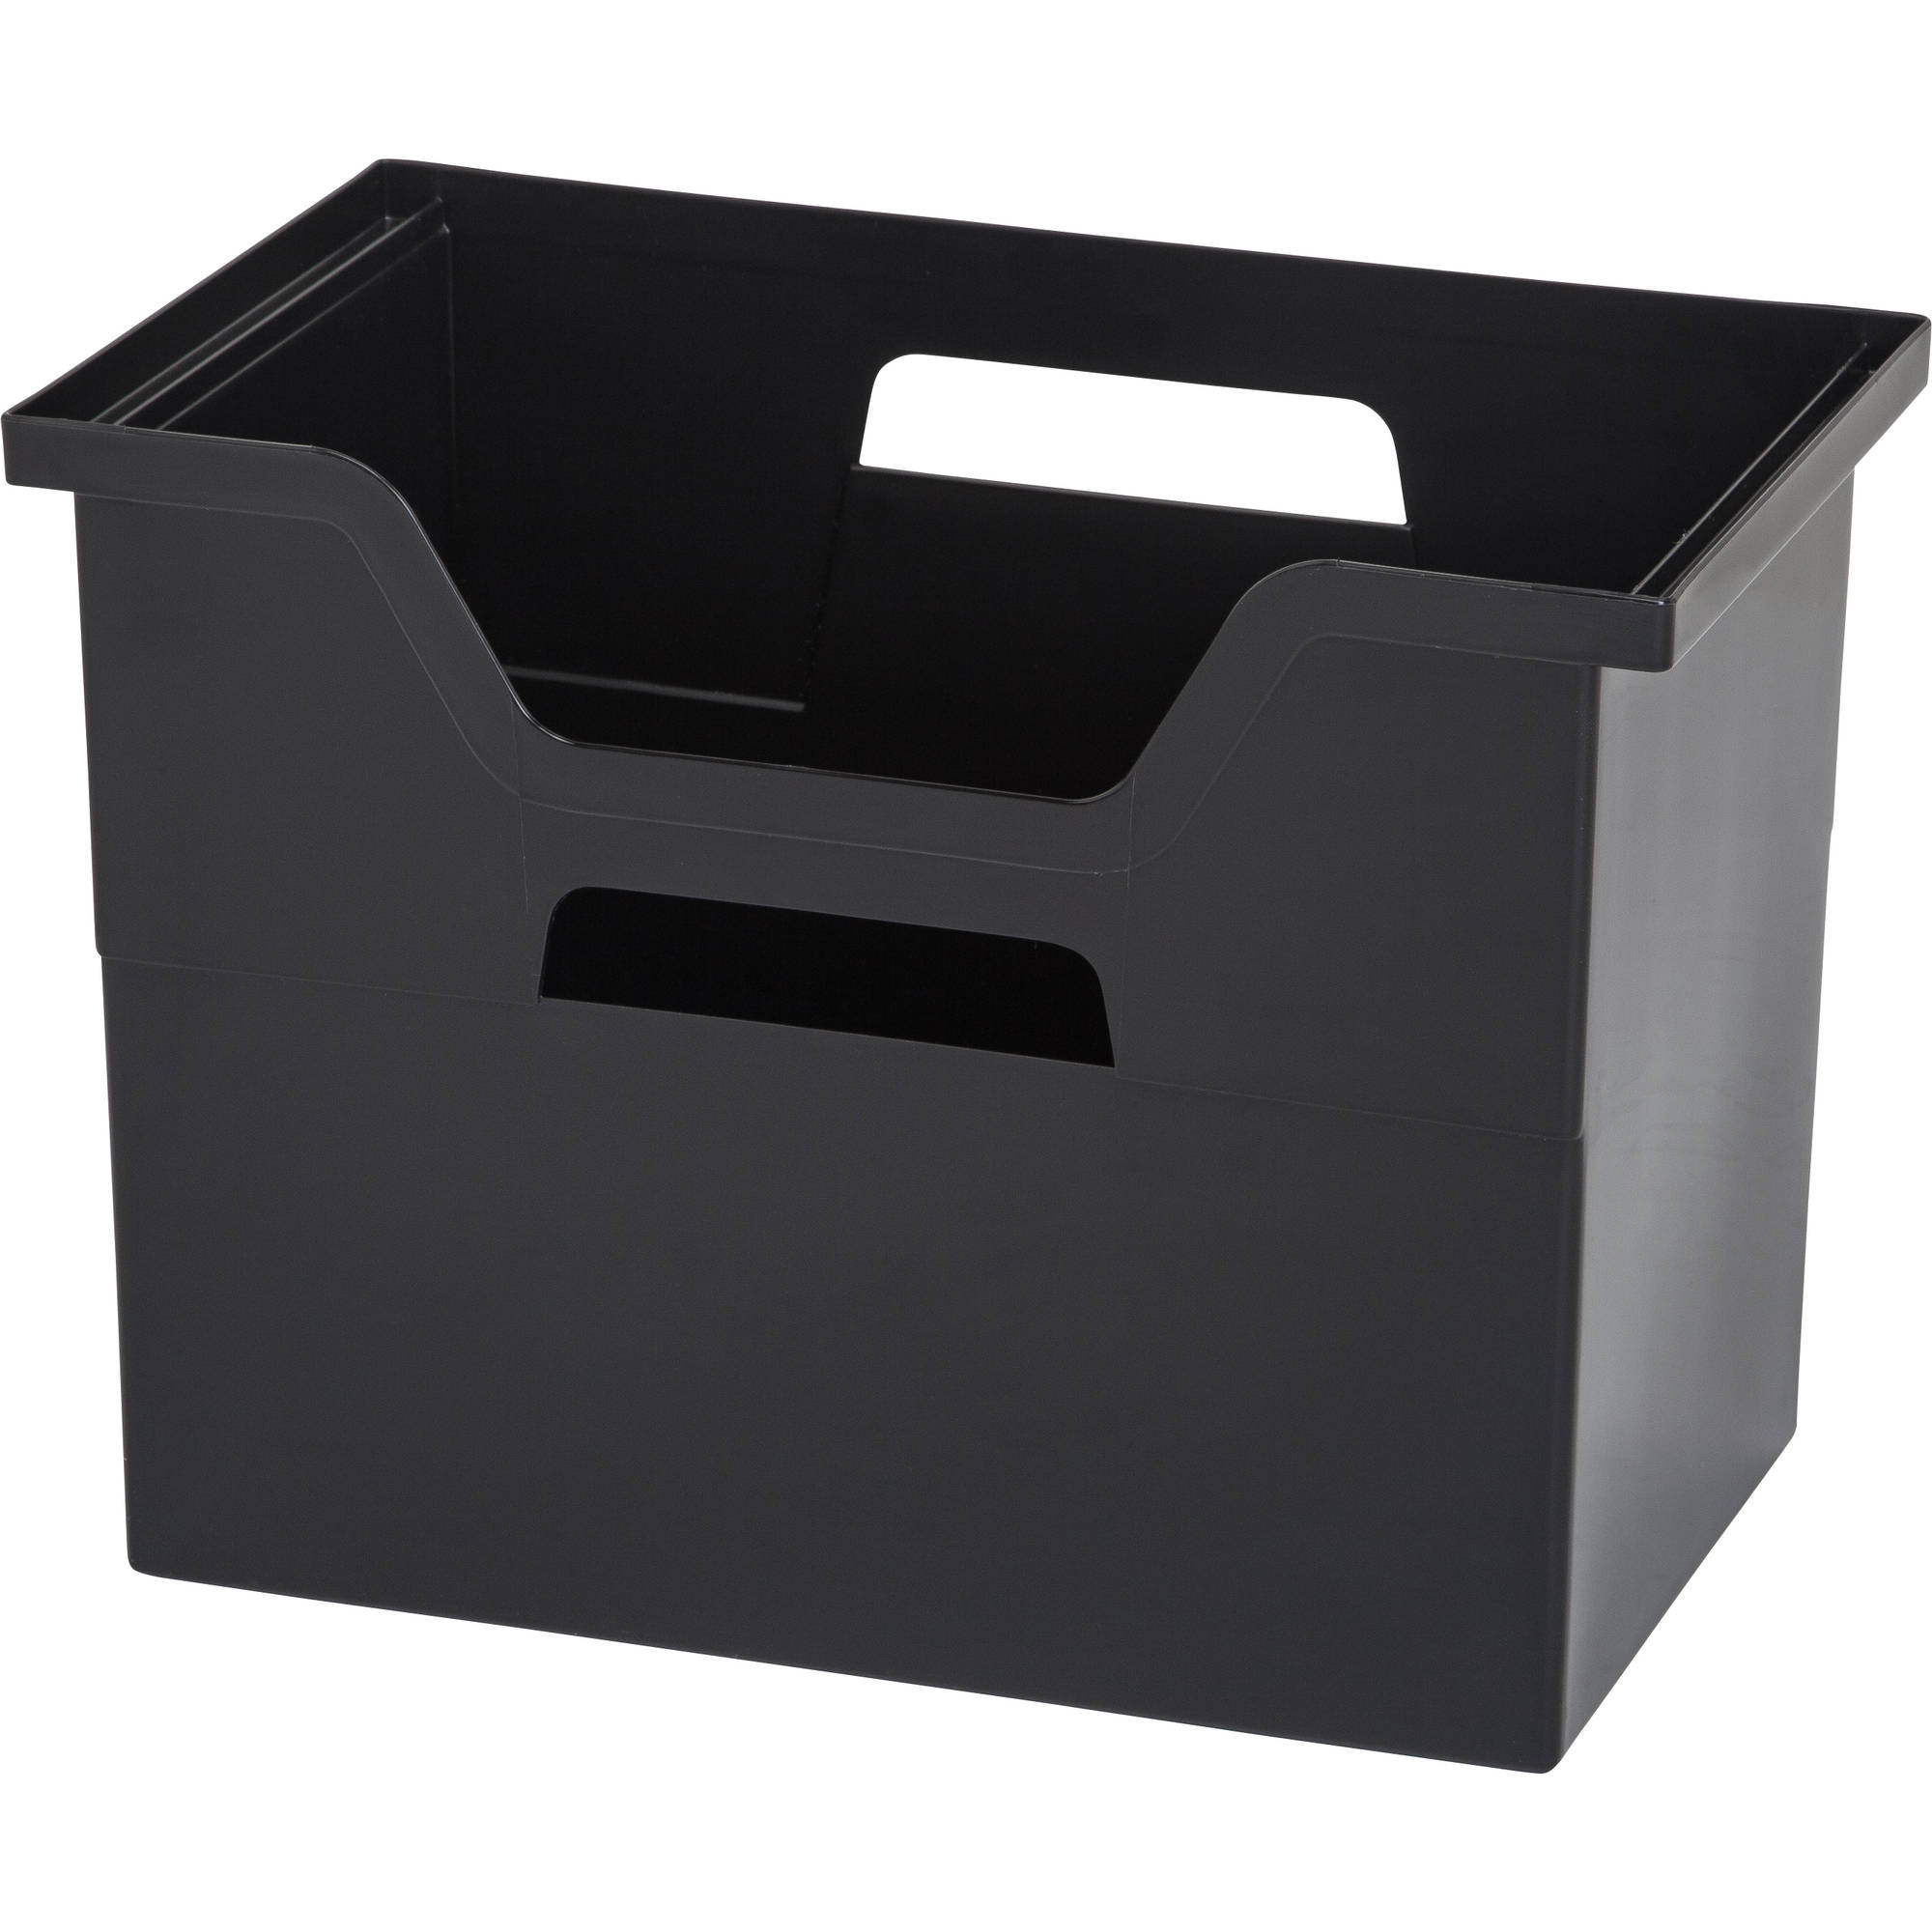 IRIS Large Desktop File Storage Box, Black Set Of 4